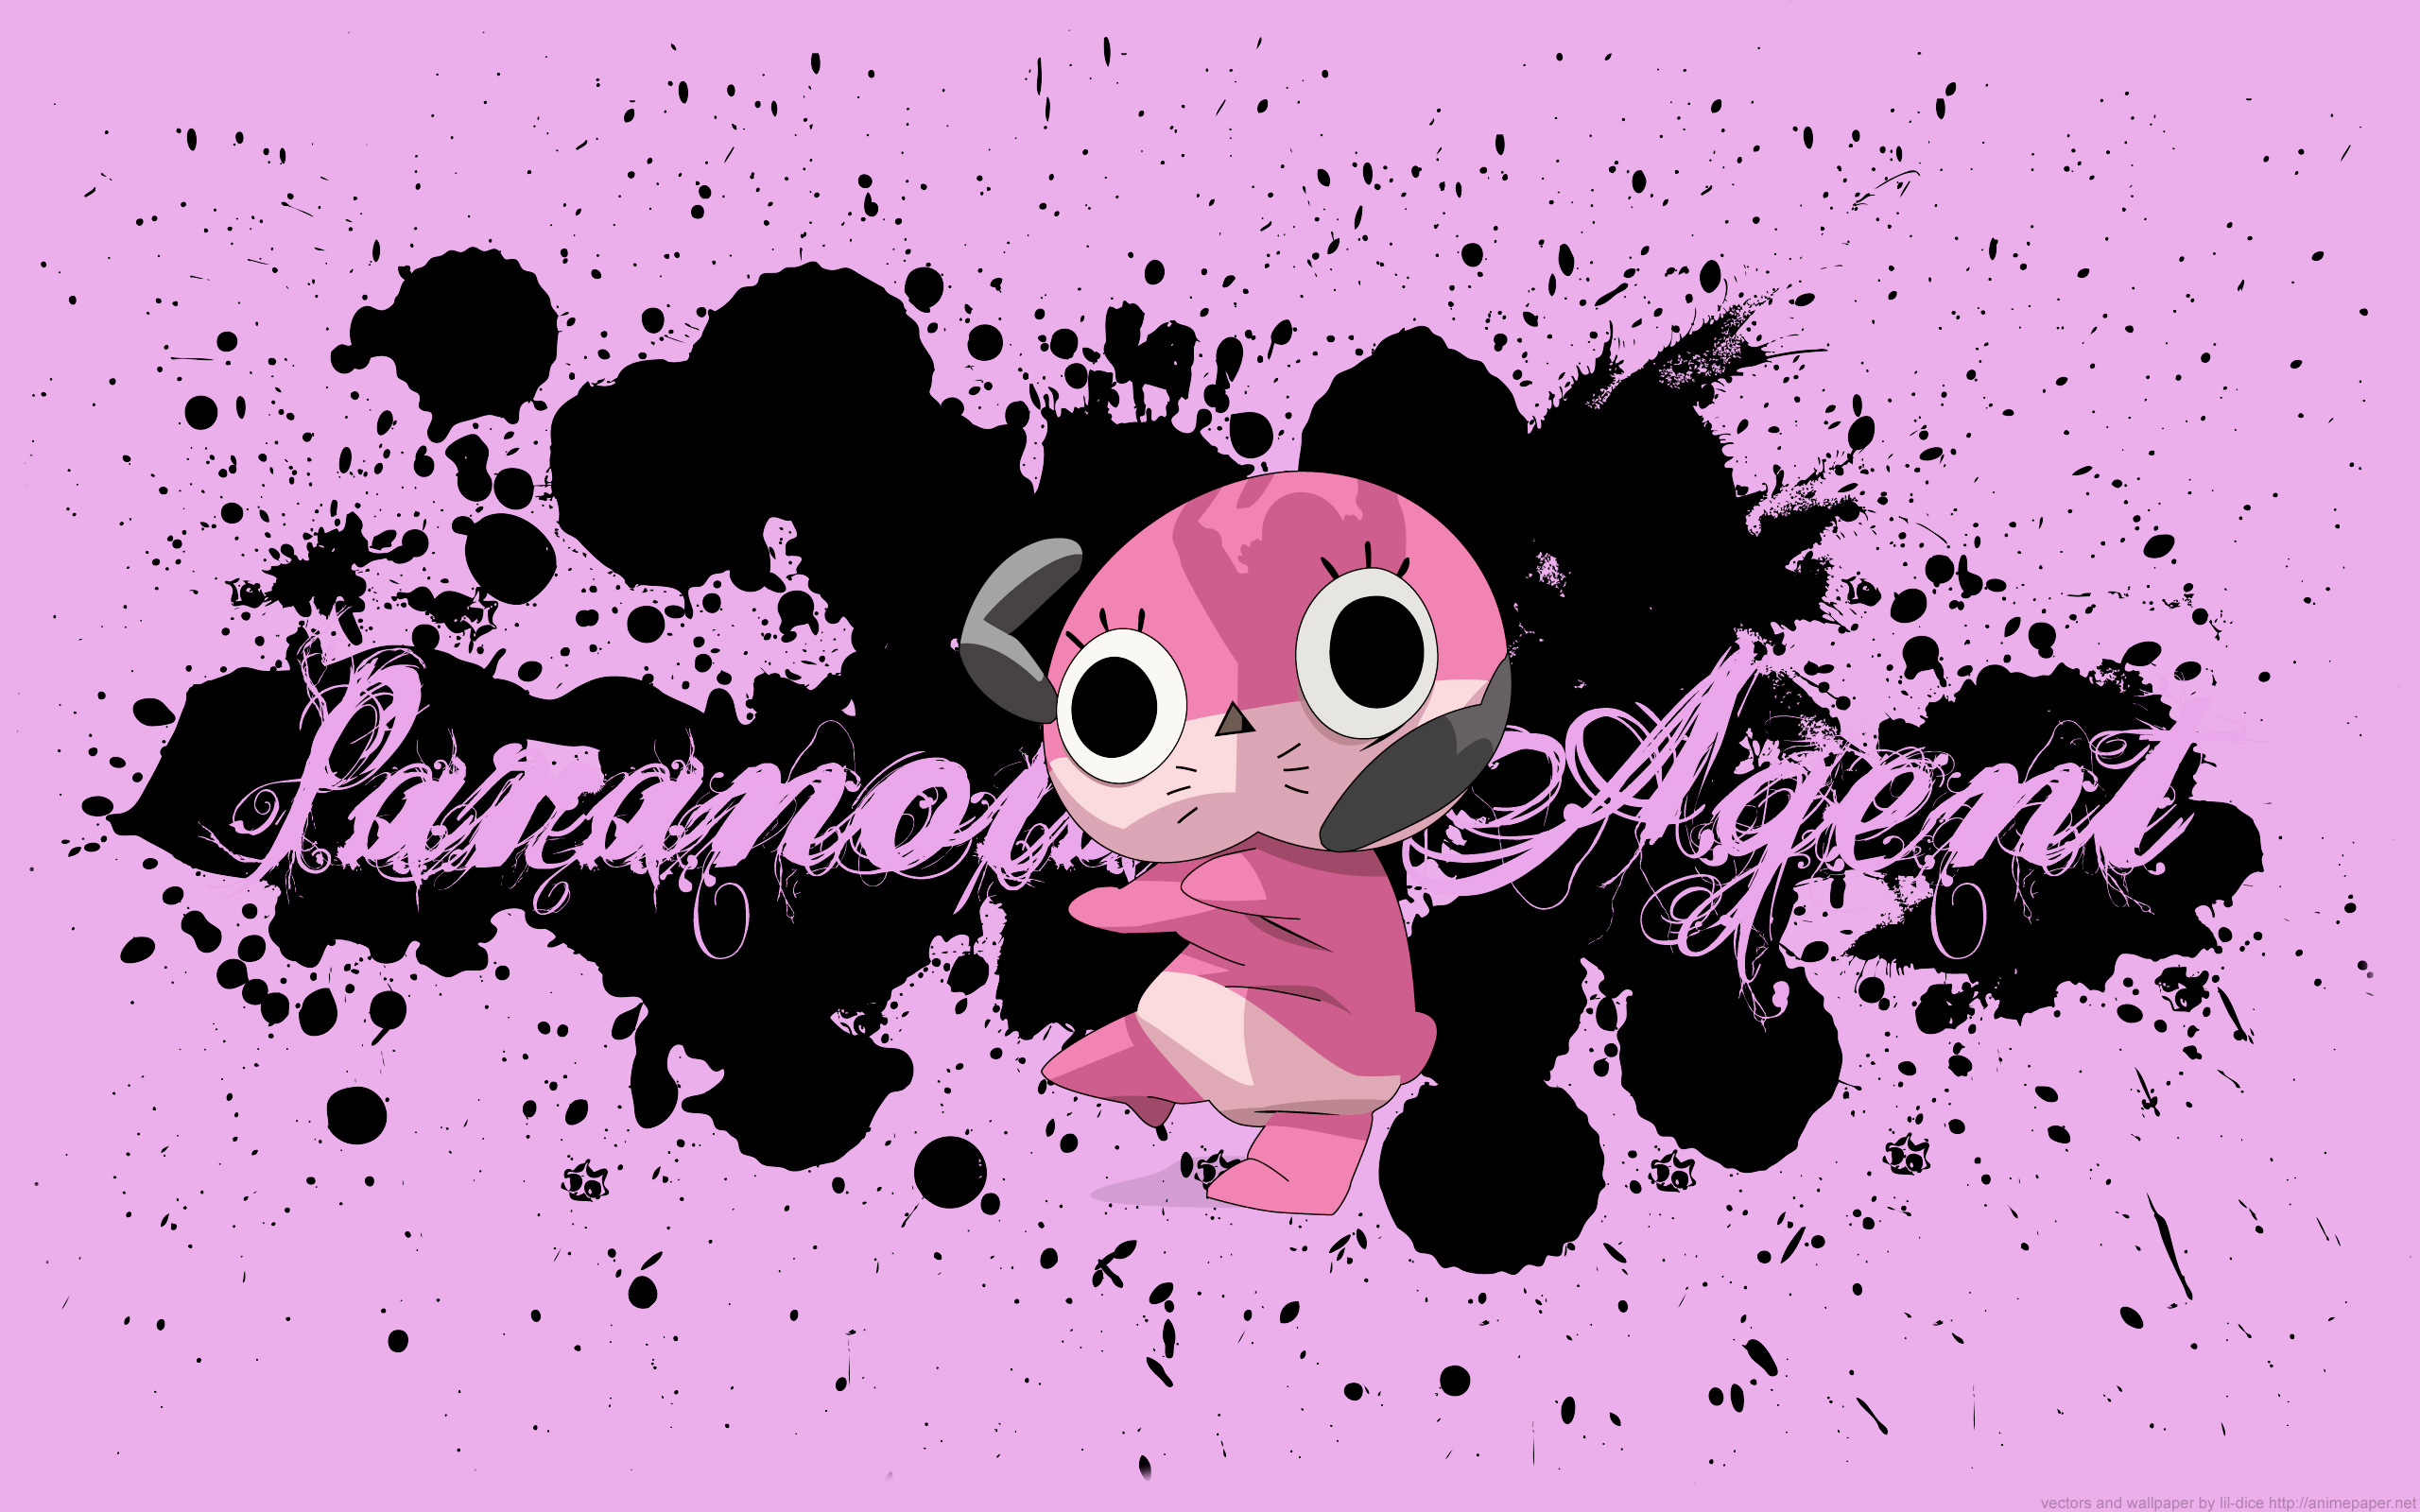 Paranoia Agent HD Wallpaper #507800 - Zerochan Anime Image Board